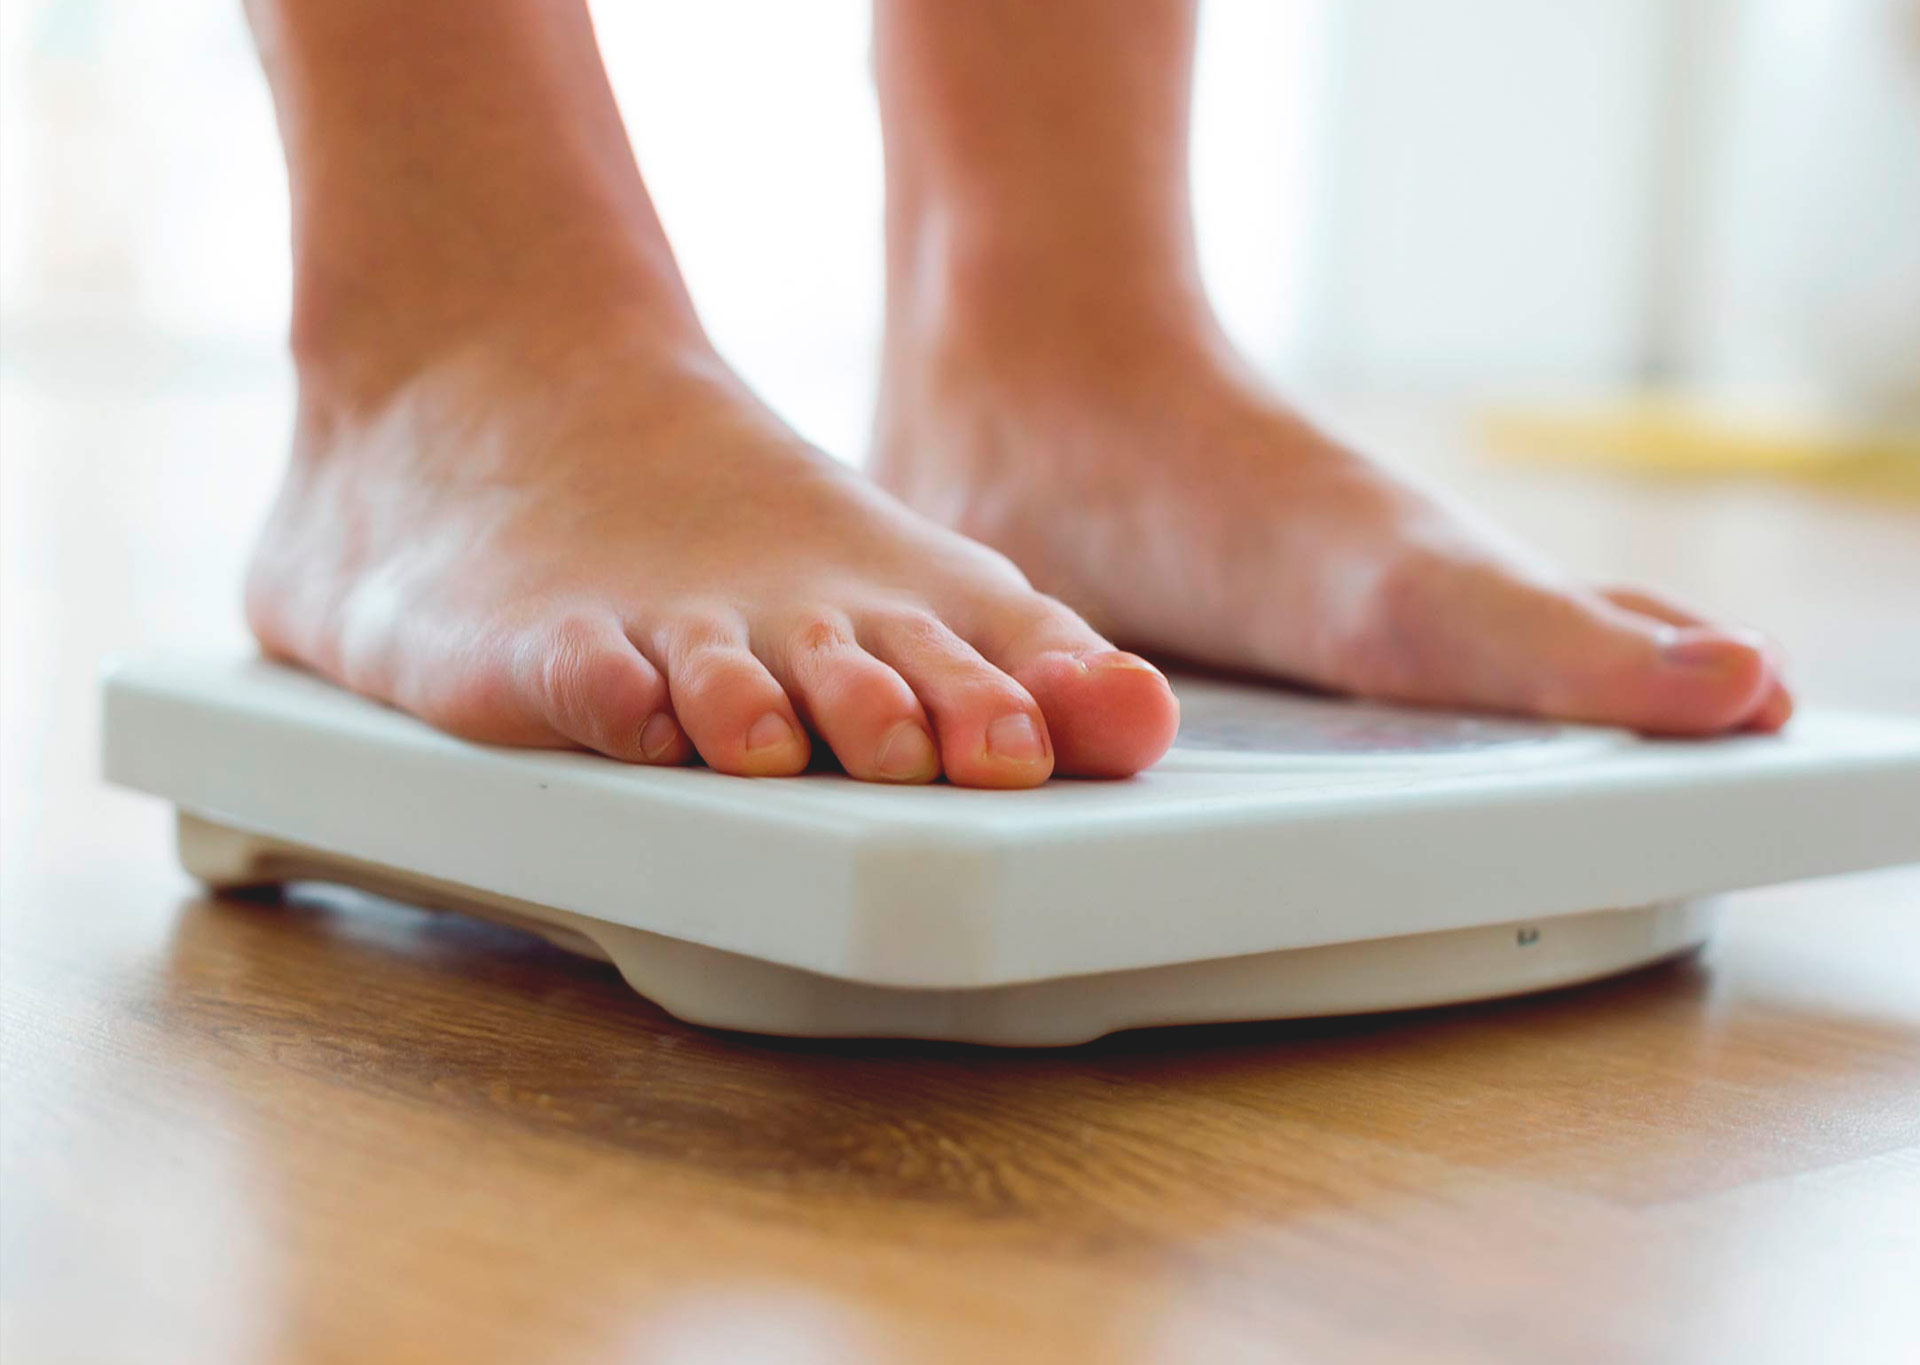 feet-on-scale-measuring-weight-loss-from-ginger-root-organicnewsroom